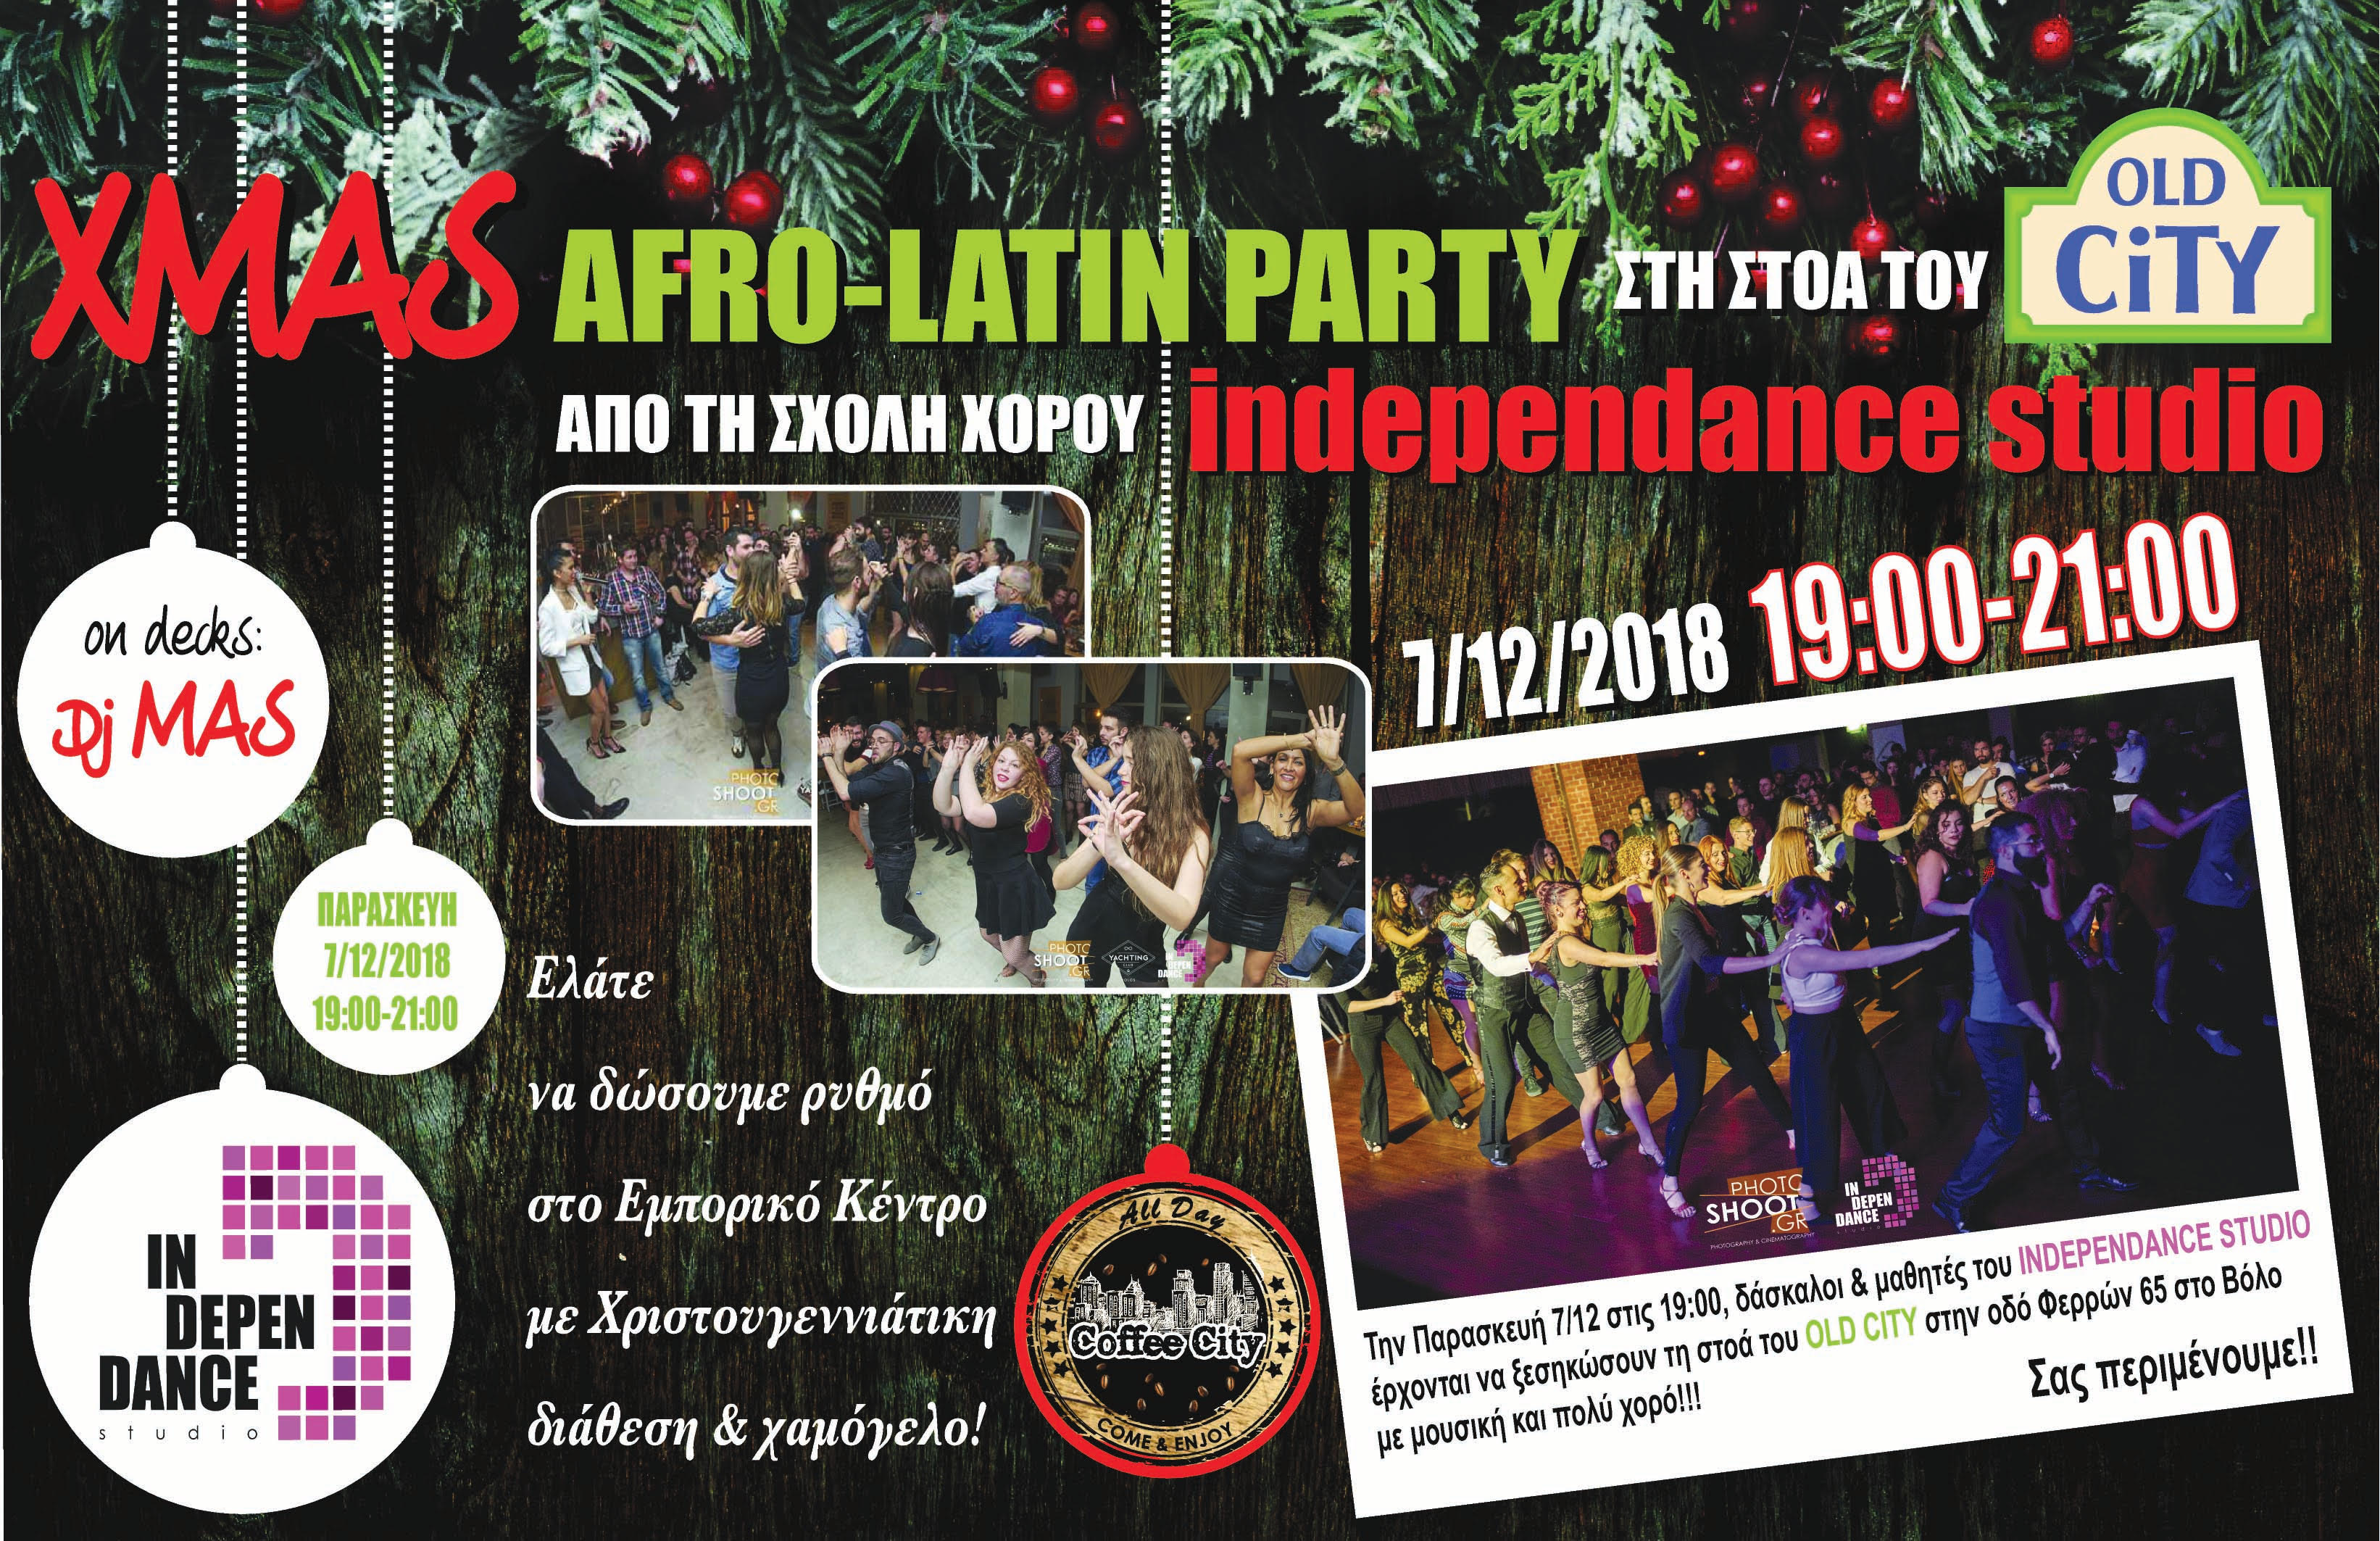 XMAS AFROLATIN PARTY στη στοά του Old City από τη σχολή χορού INDEPENDANCE STUDIO!